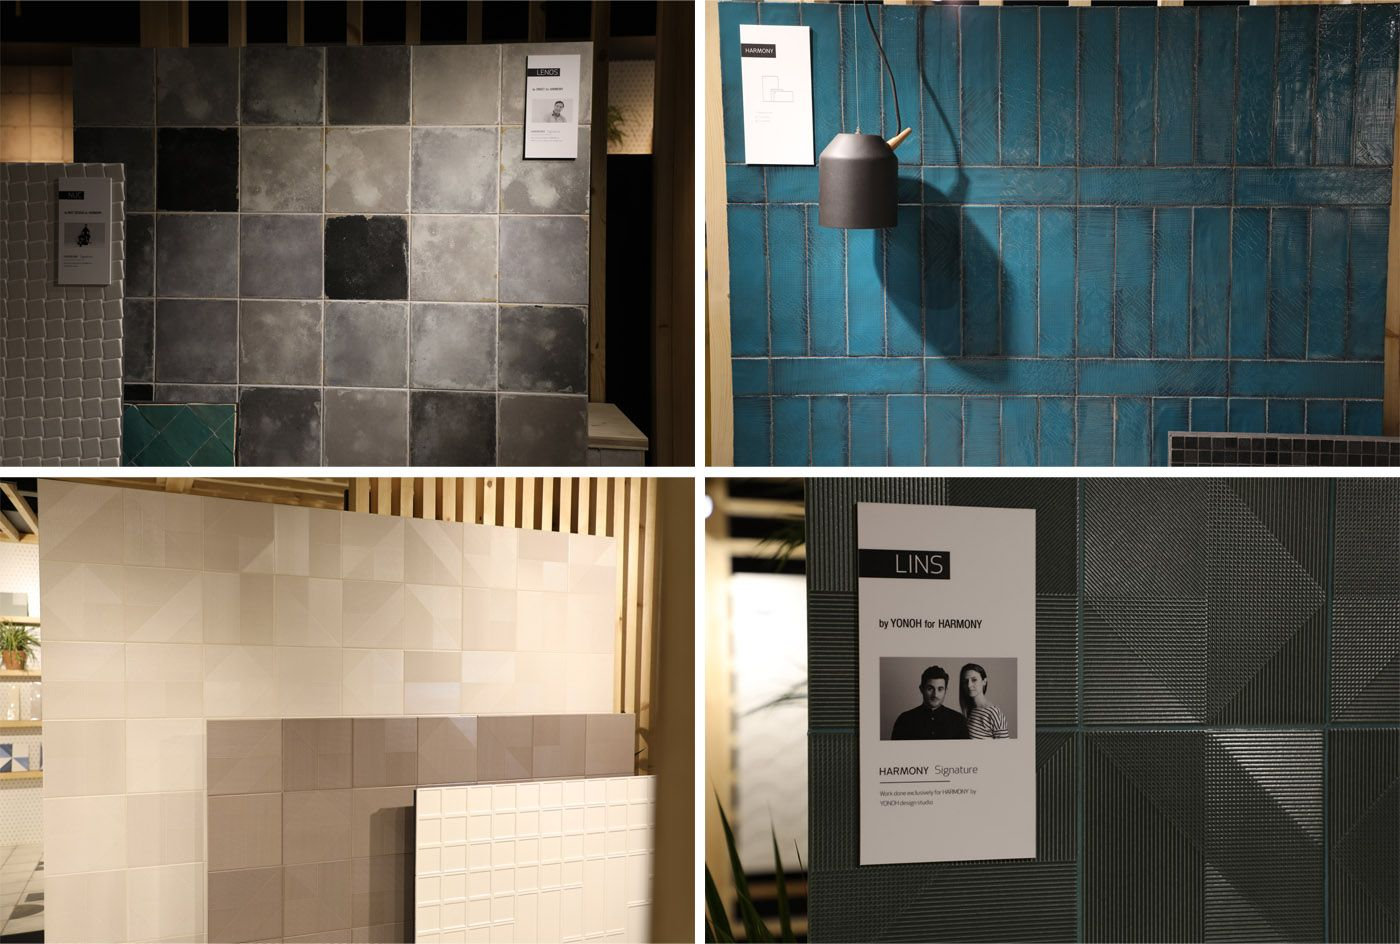 Lins, Lenos and Argila Pasadena are presented by Harmony, the tile ...